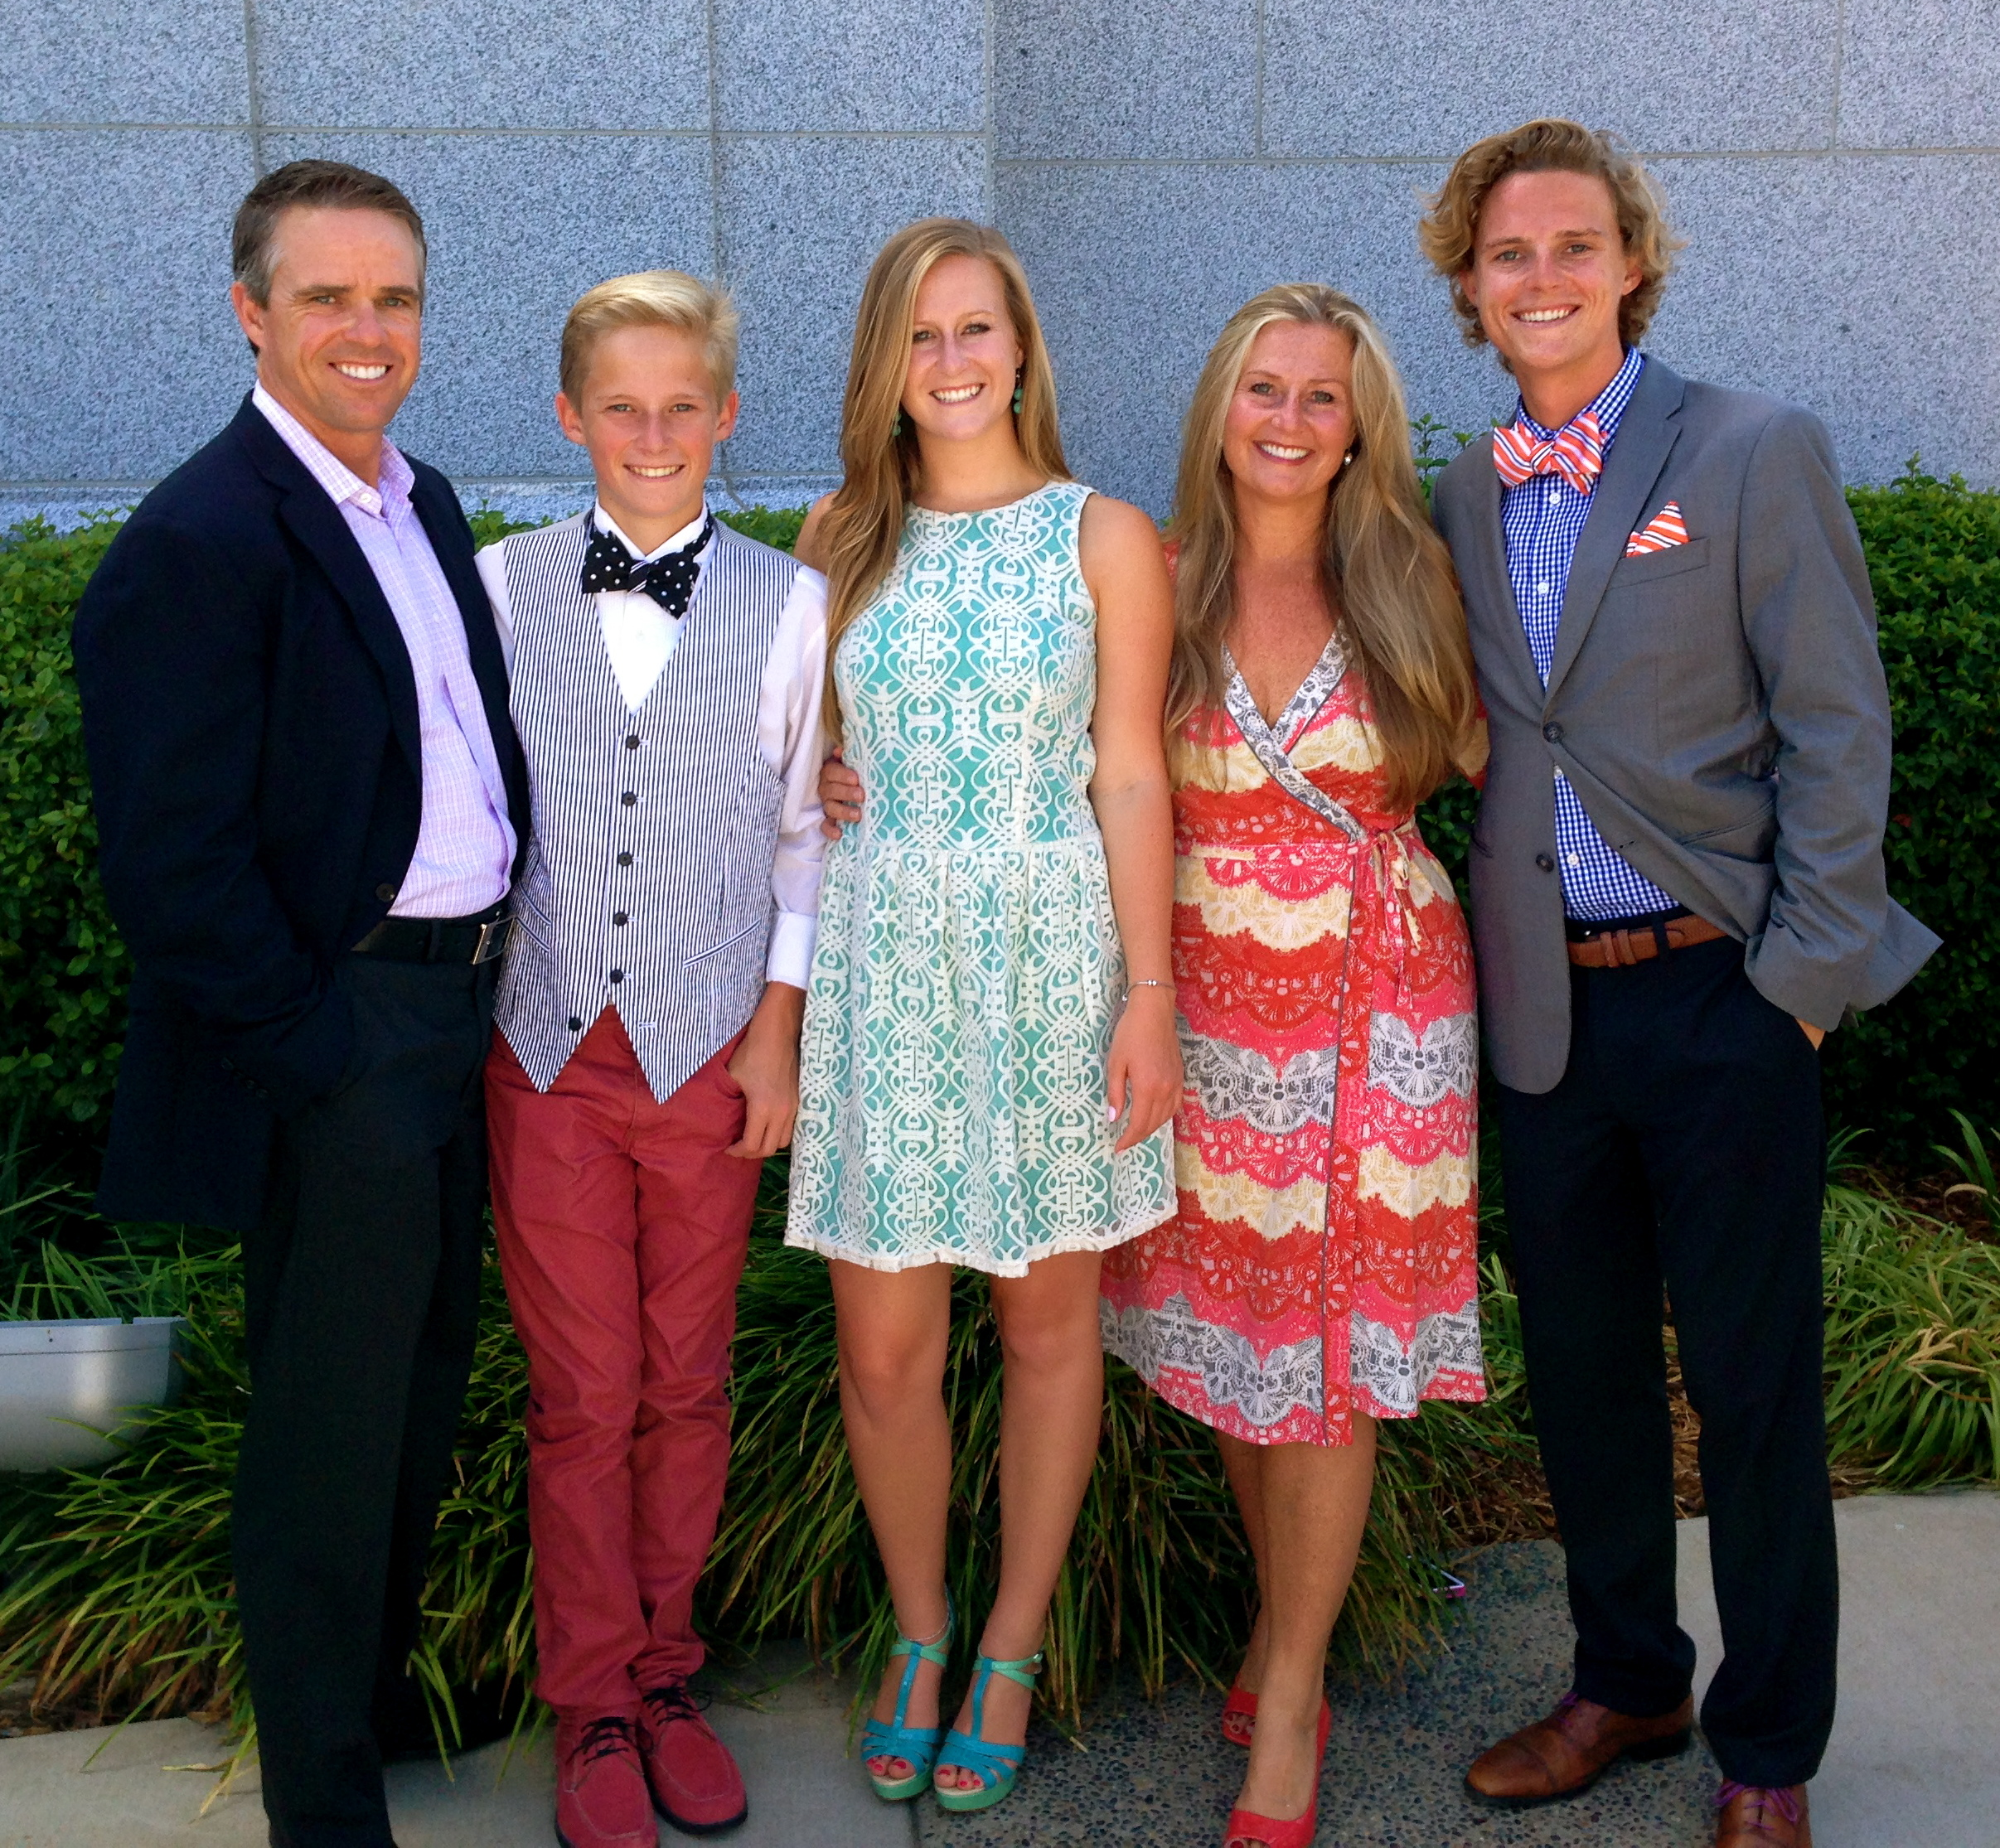 Family Wedding // Placerville, California.